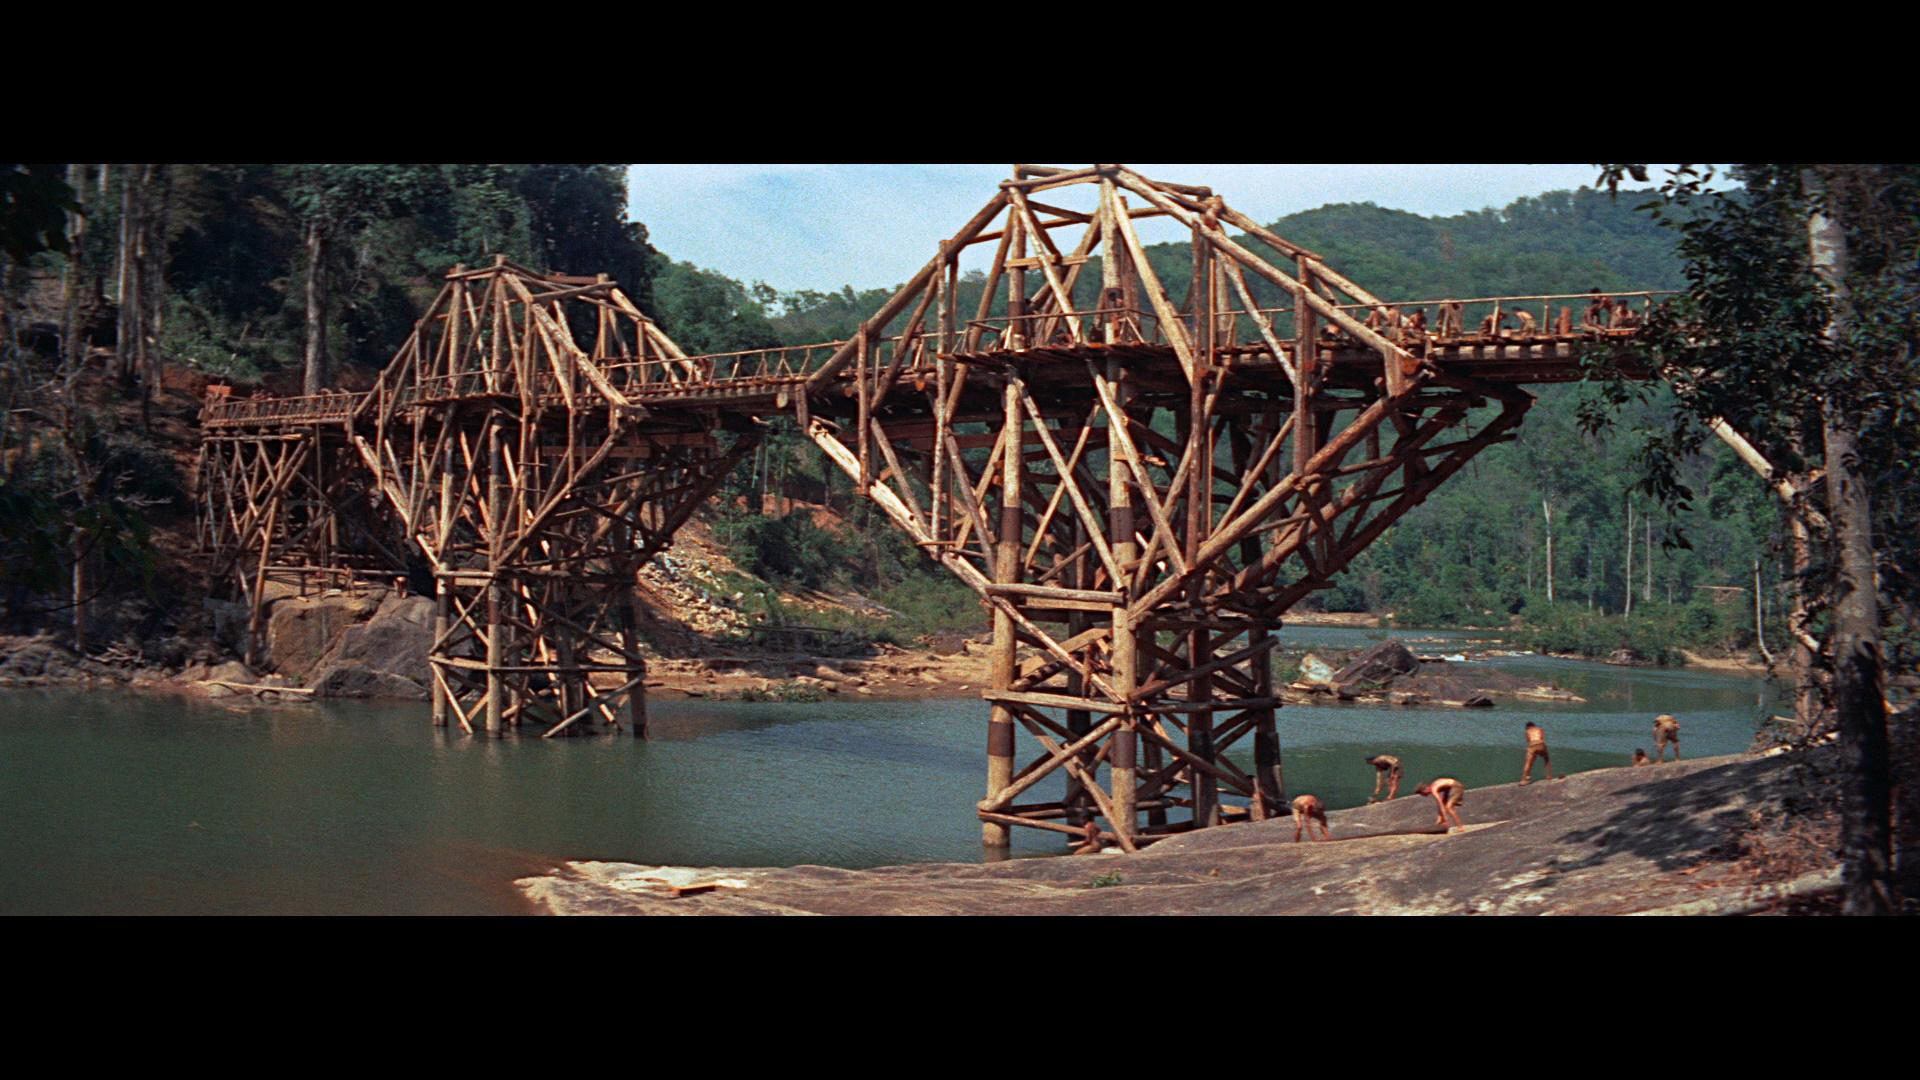 hd windows wallpapers: The Bridge on the River Kwai (1957) wallpaper